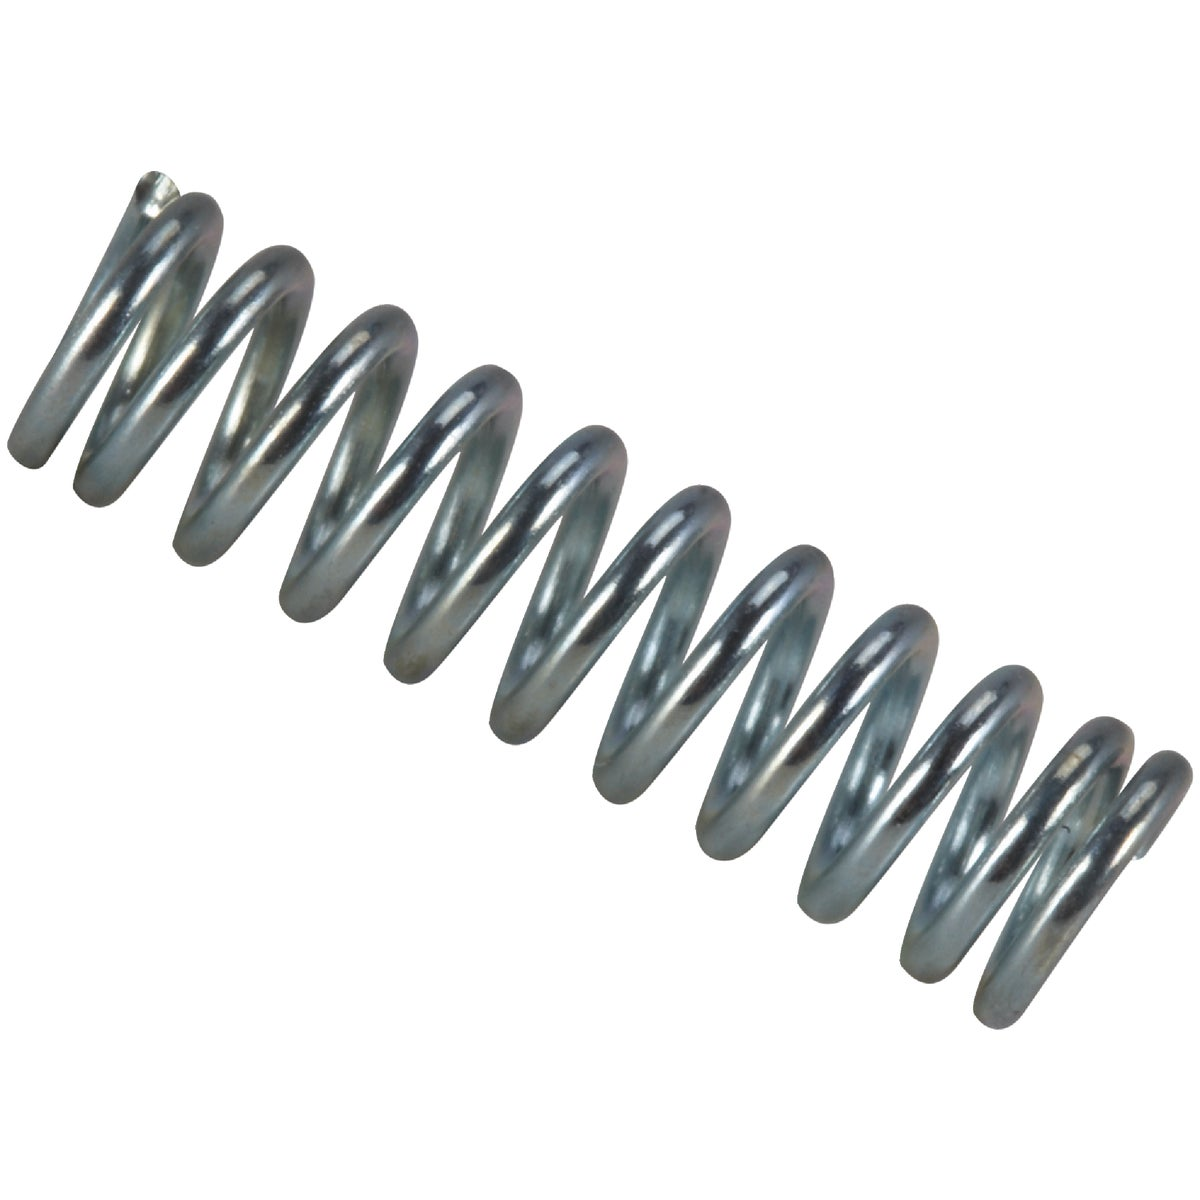 COMPRESSION SPRING - C-680 by Century Spring Corp